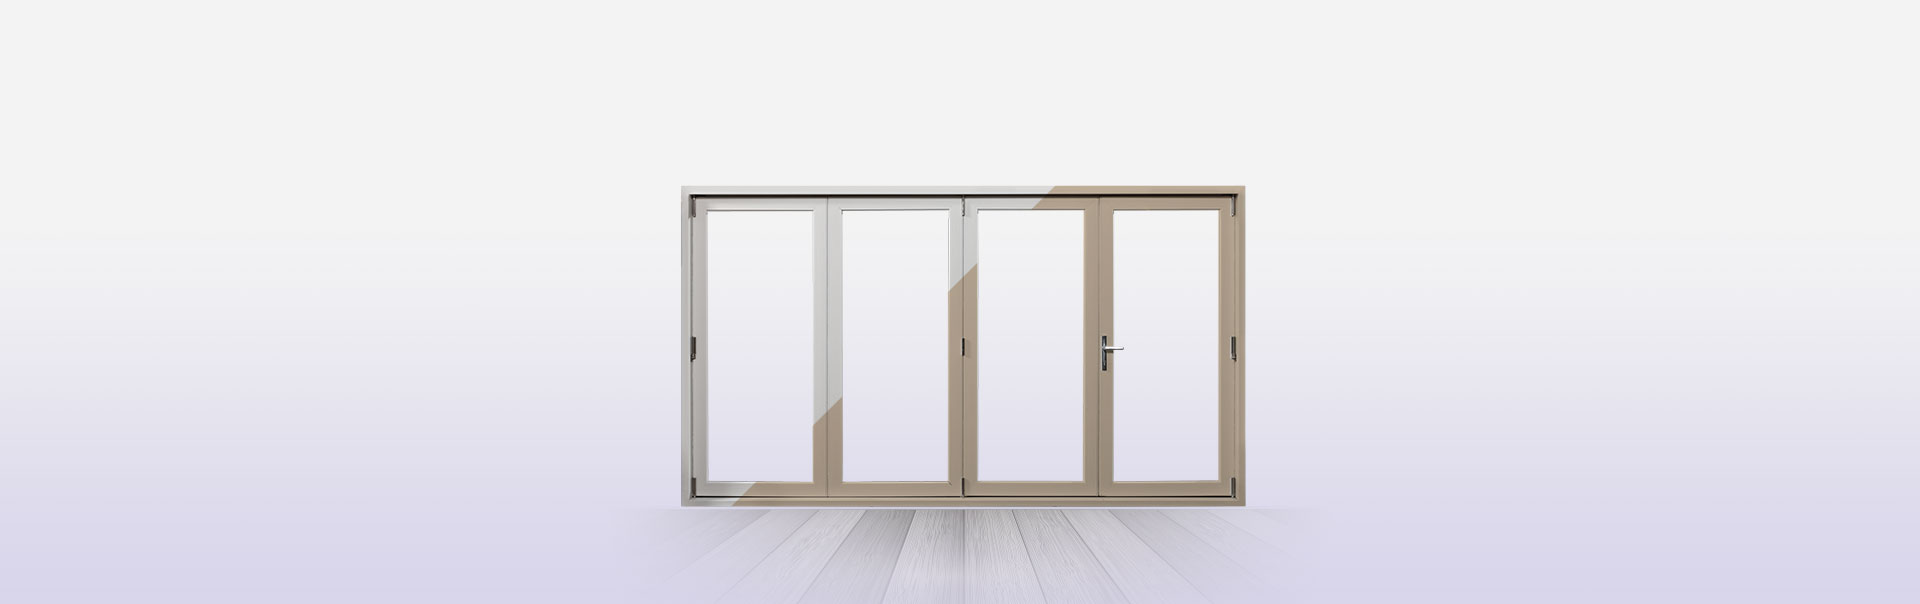 Patio Door Configurator